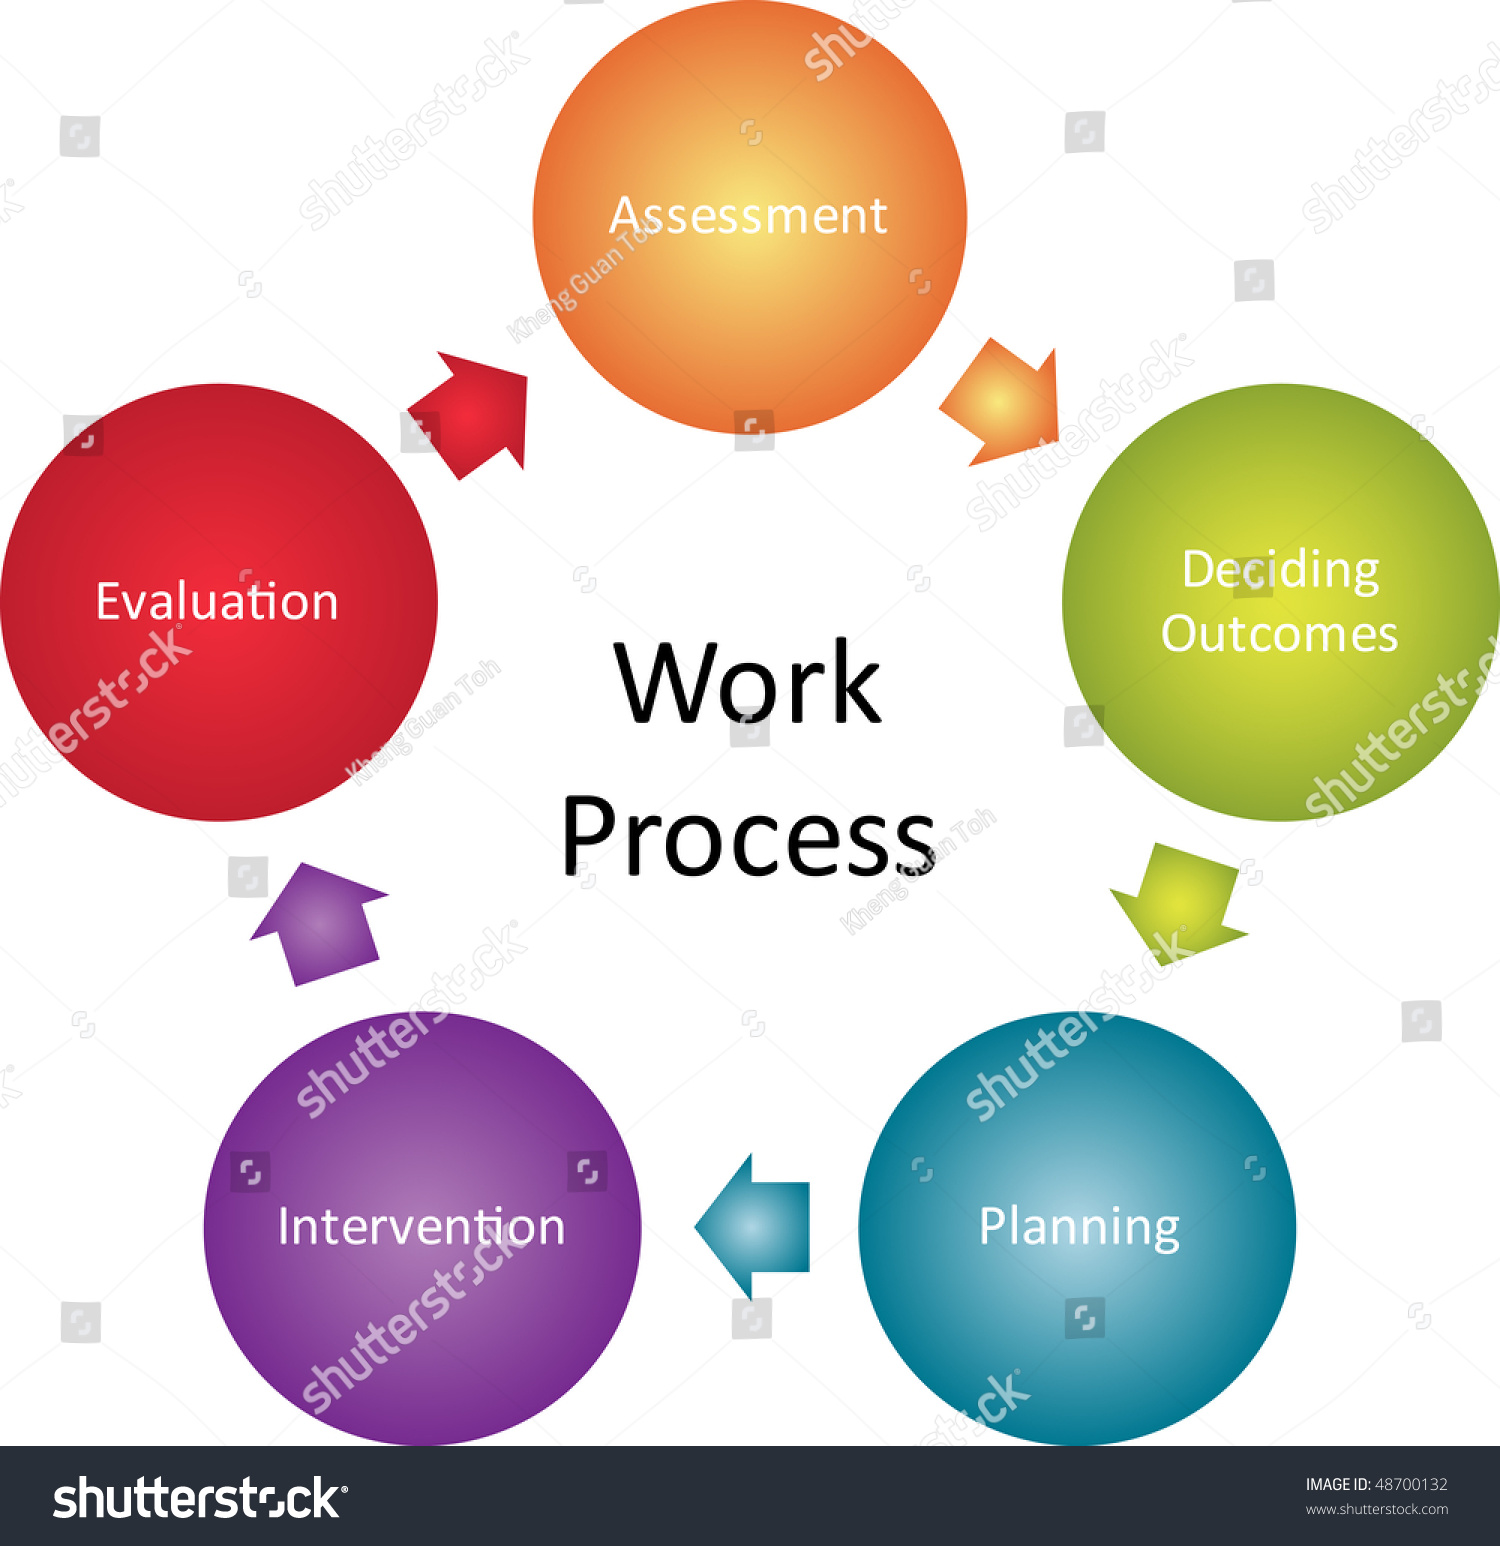 Work process management business strategy concept stock work process management business strategy concept diagram illustration pooptronica Image collections